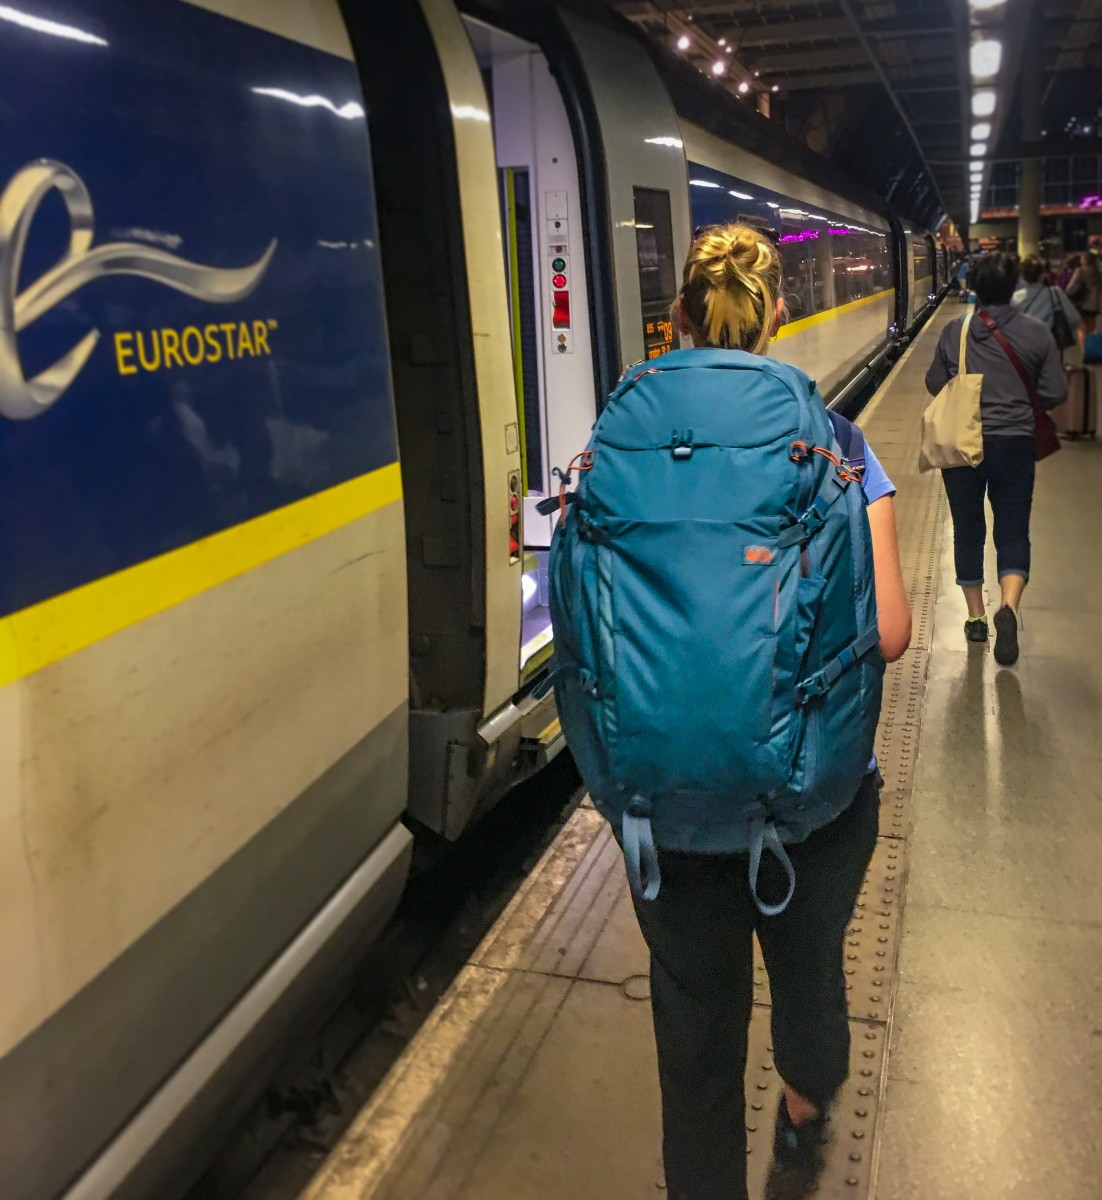 Woman with REI Women's Ruckpack Travel Backpack next to Eurostar train in London